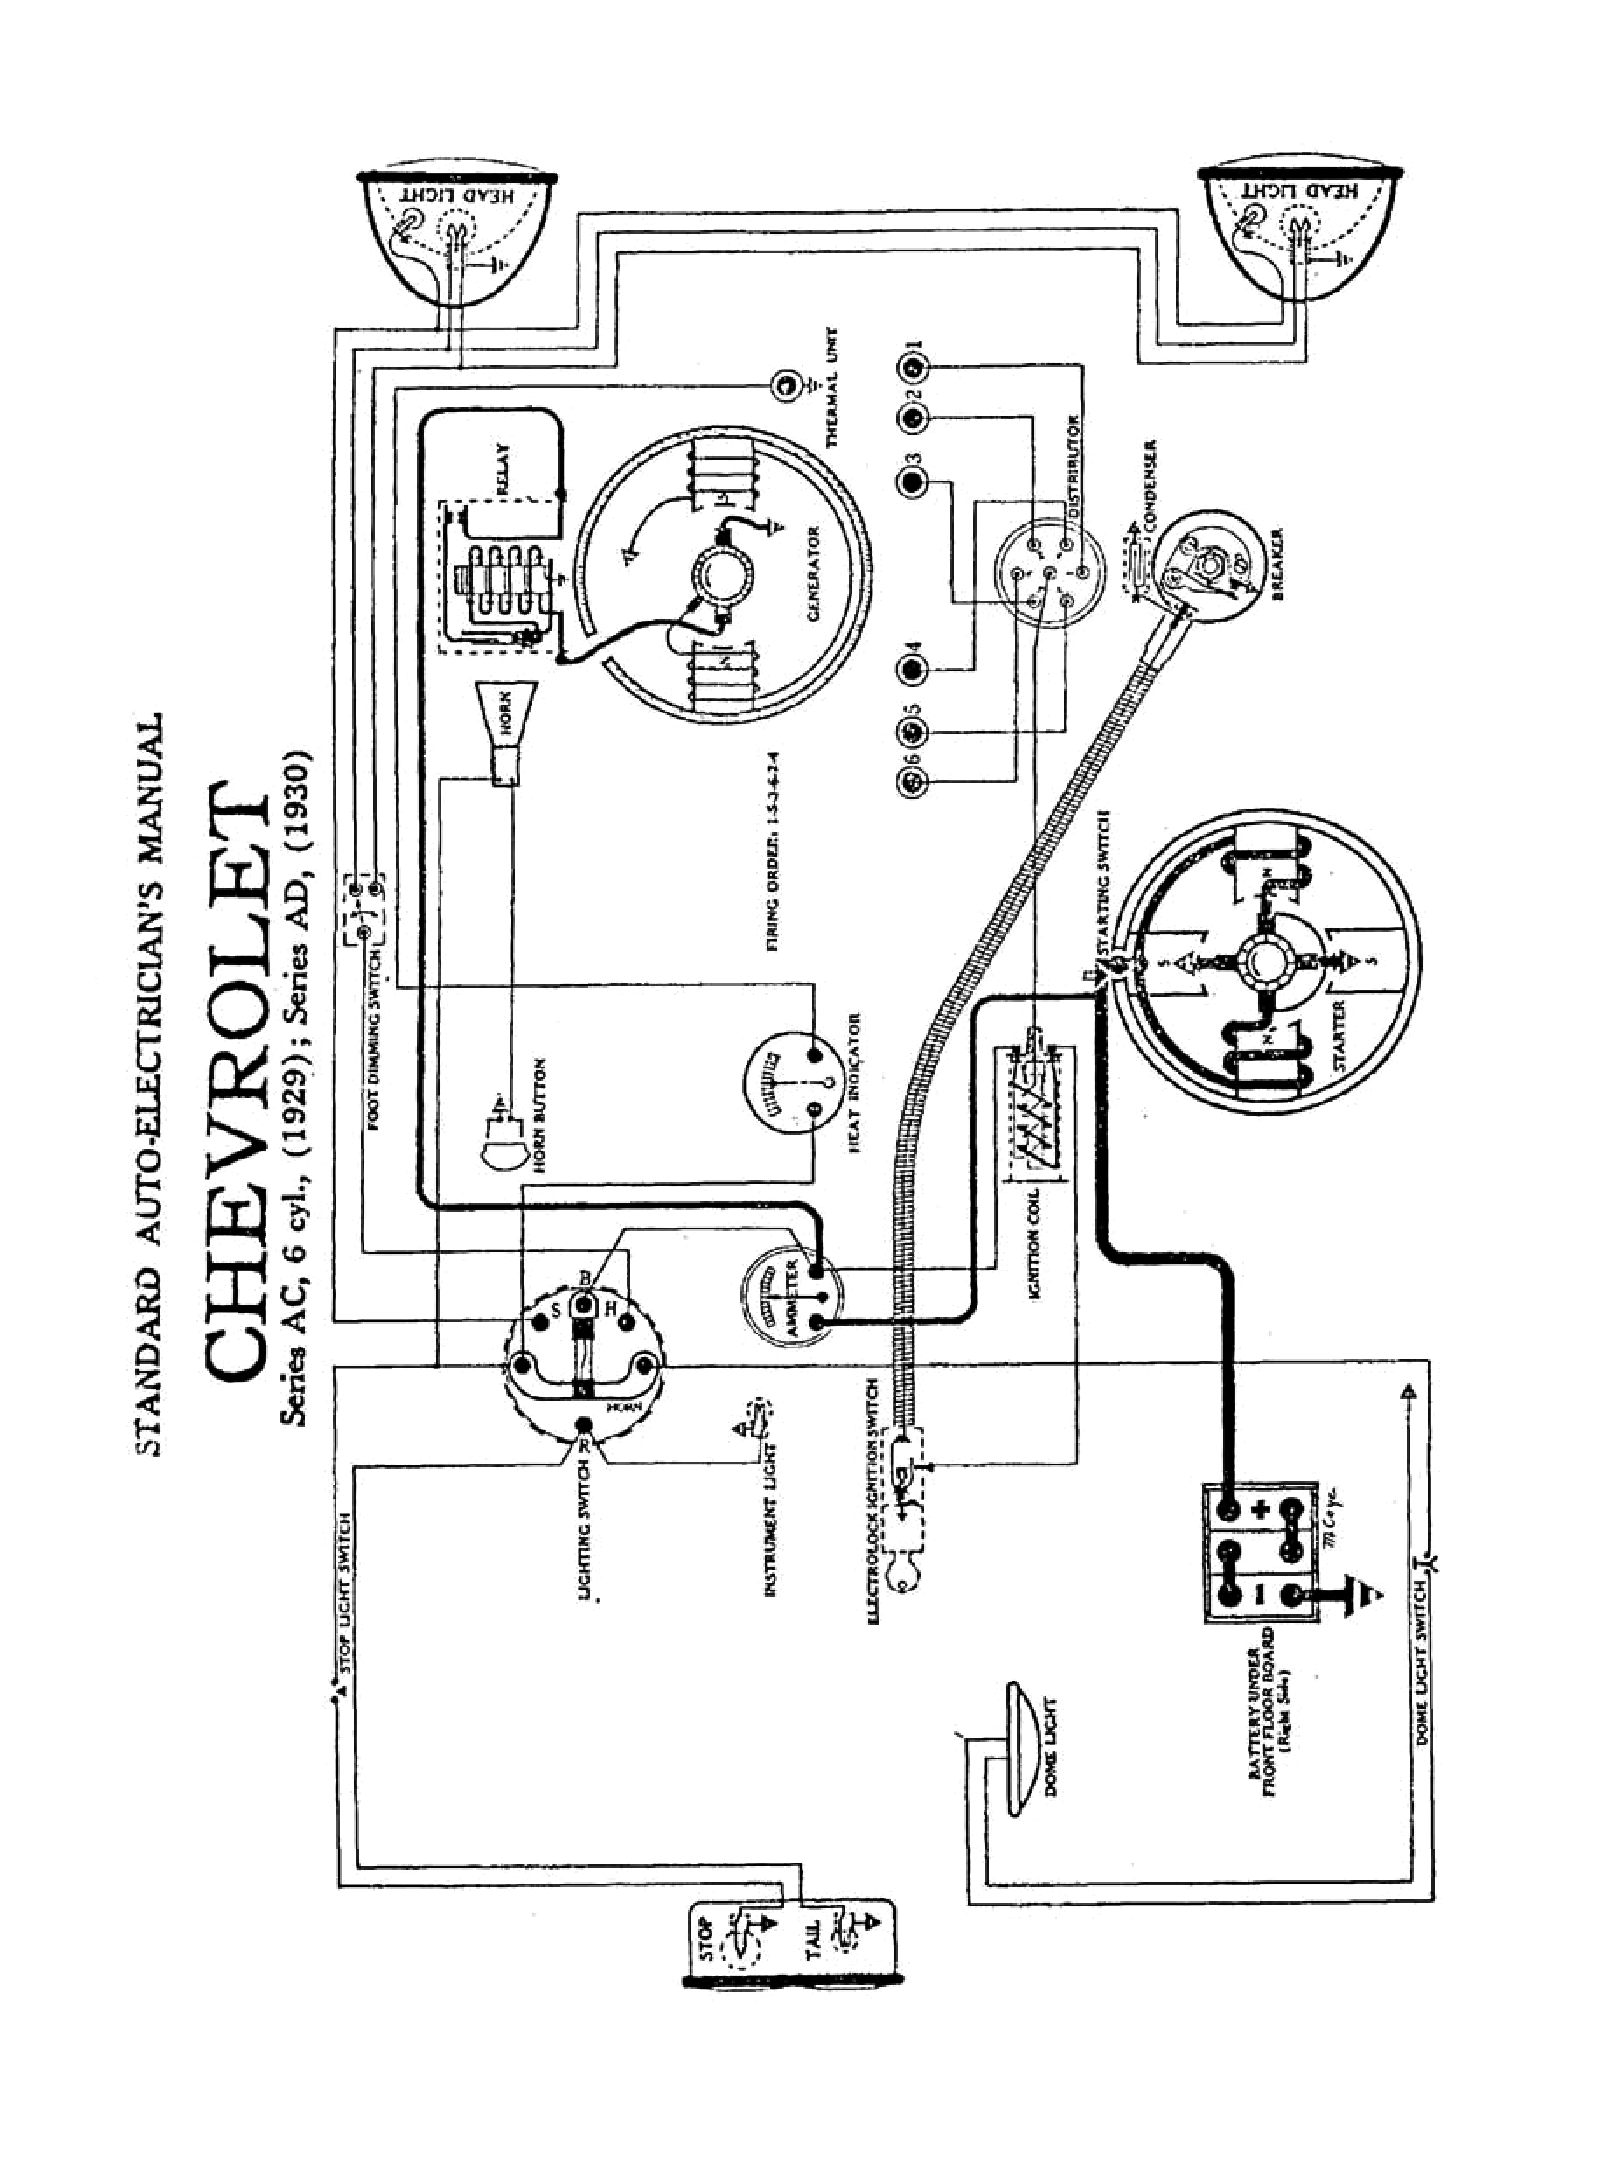 2930wiring chevy wiring diagrams model a wiring diagram chart at bayanpartner.co